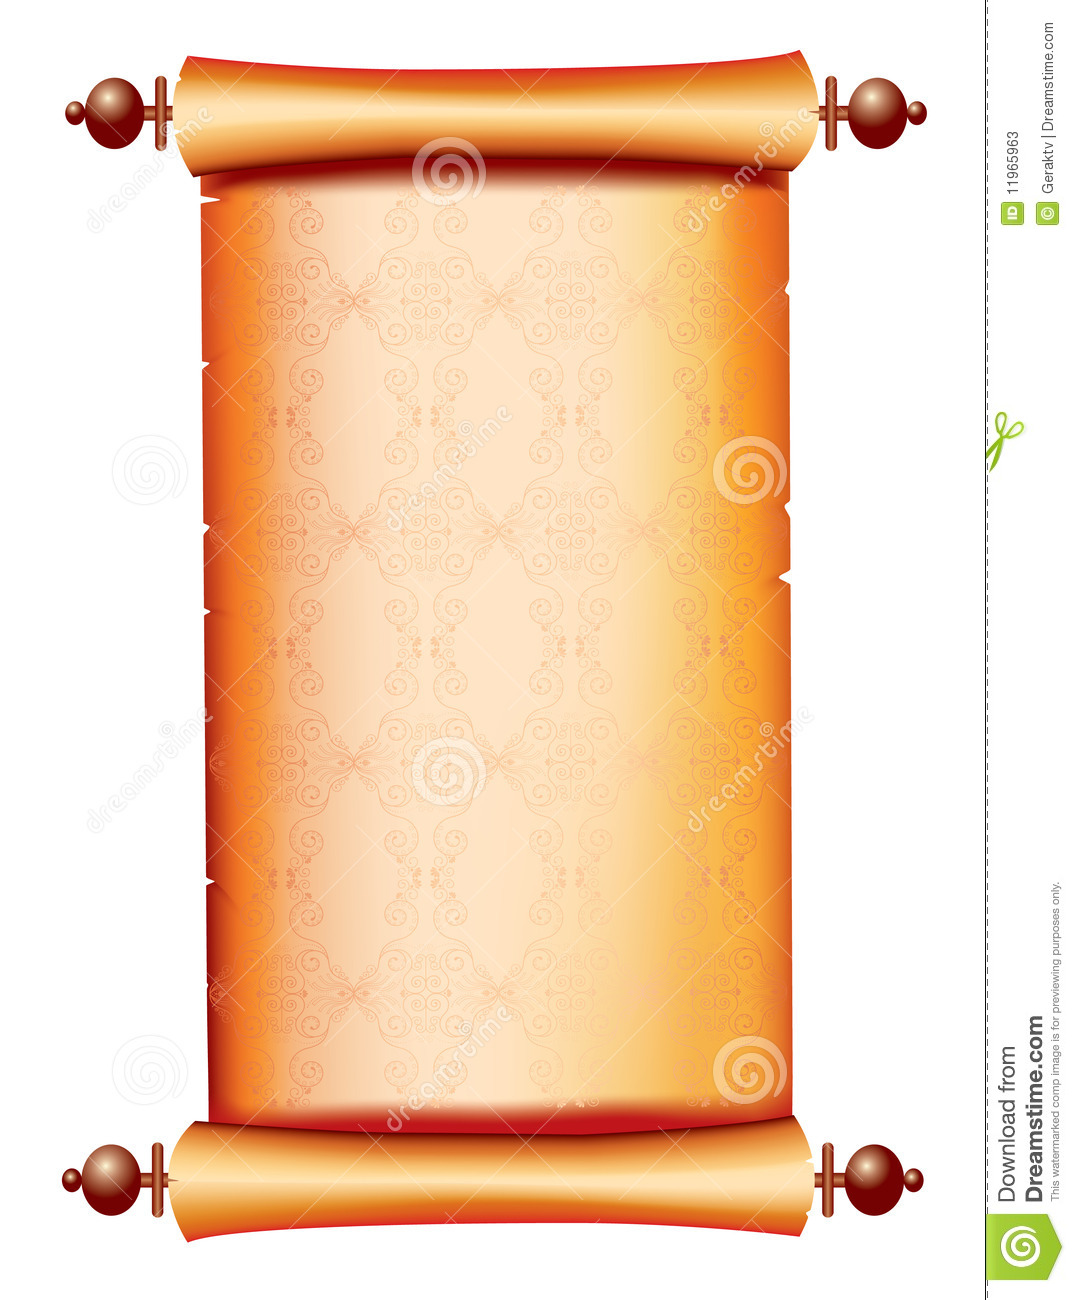 Scroll Paper For Text.Vector Background Stock Photos - Image: 11965963